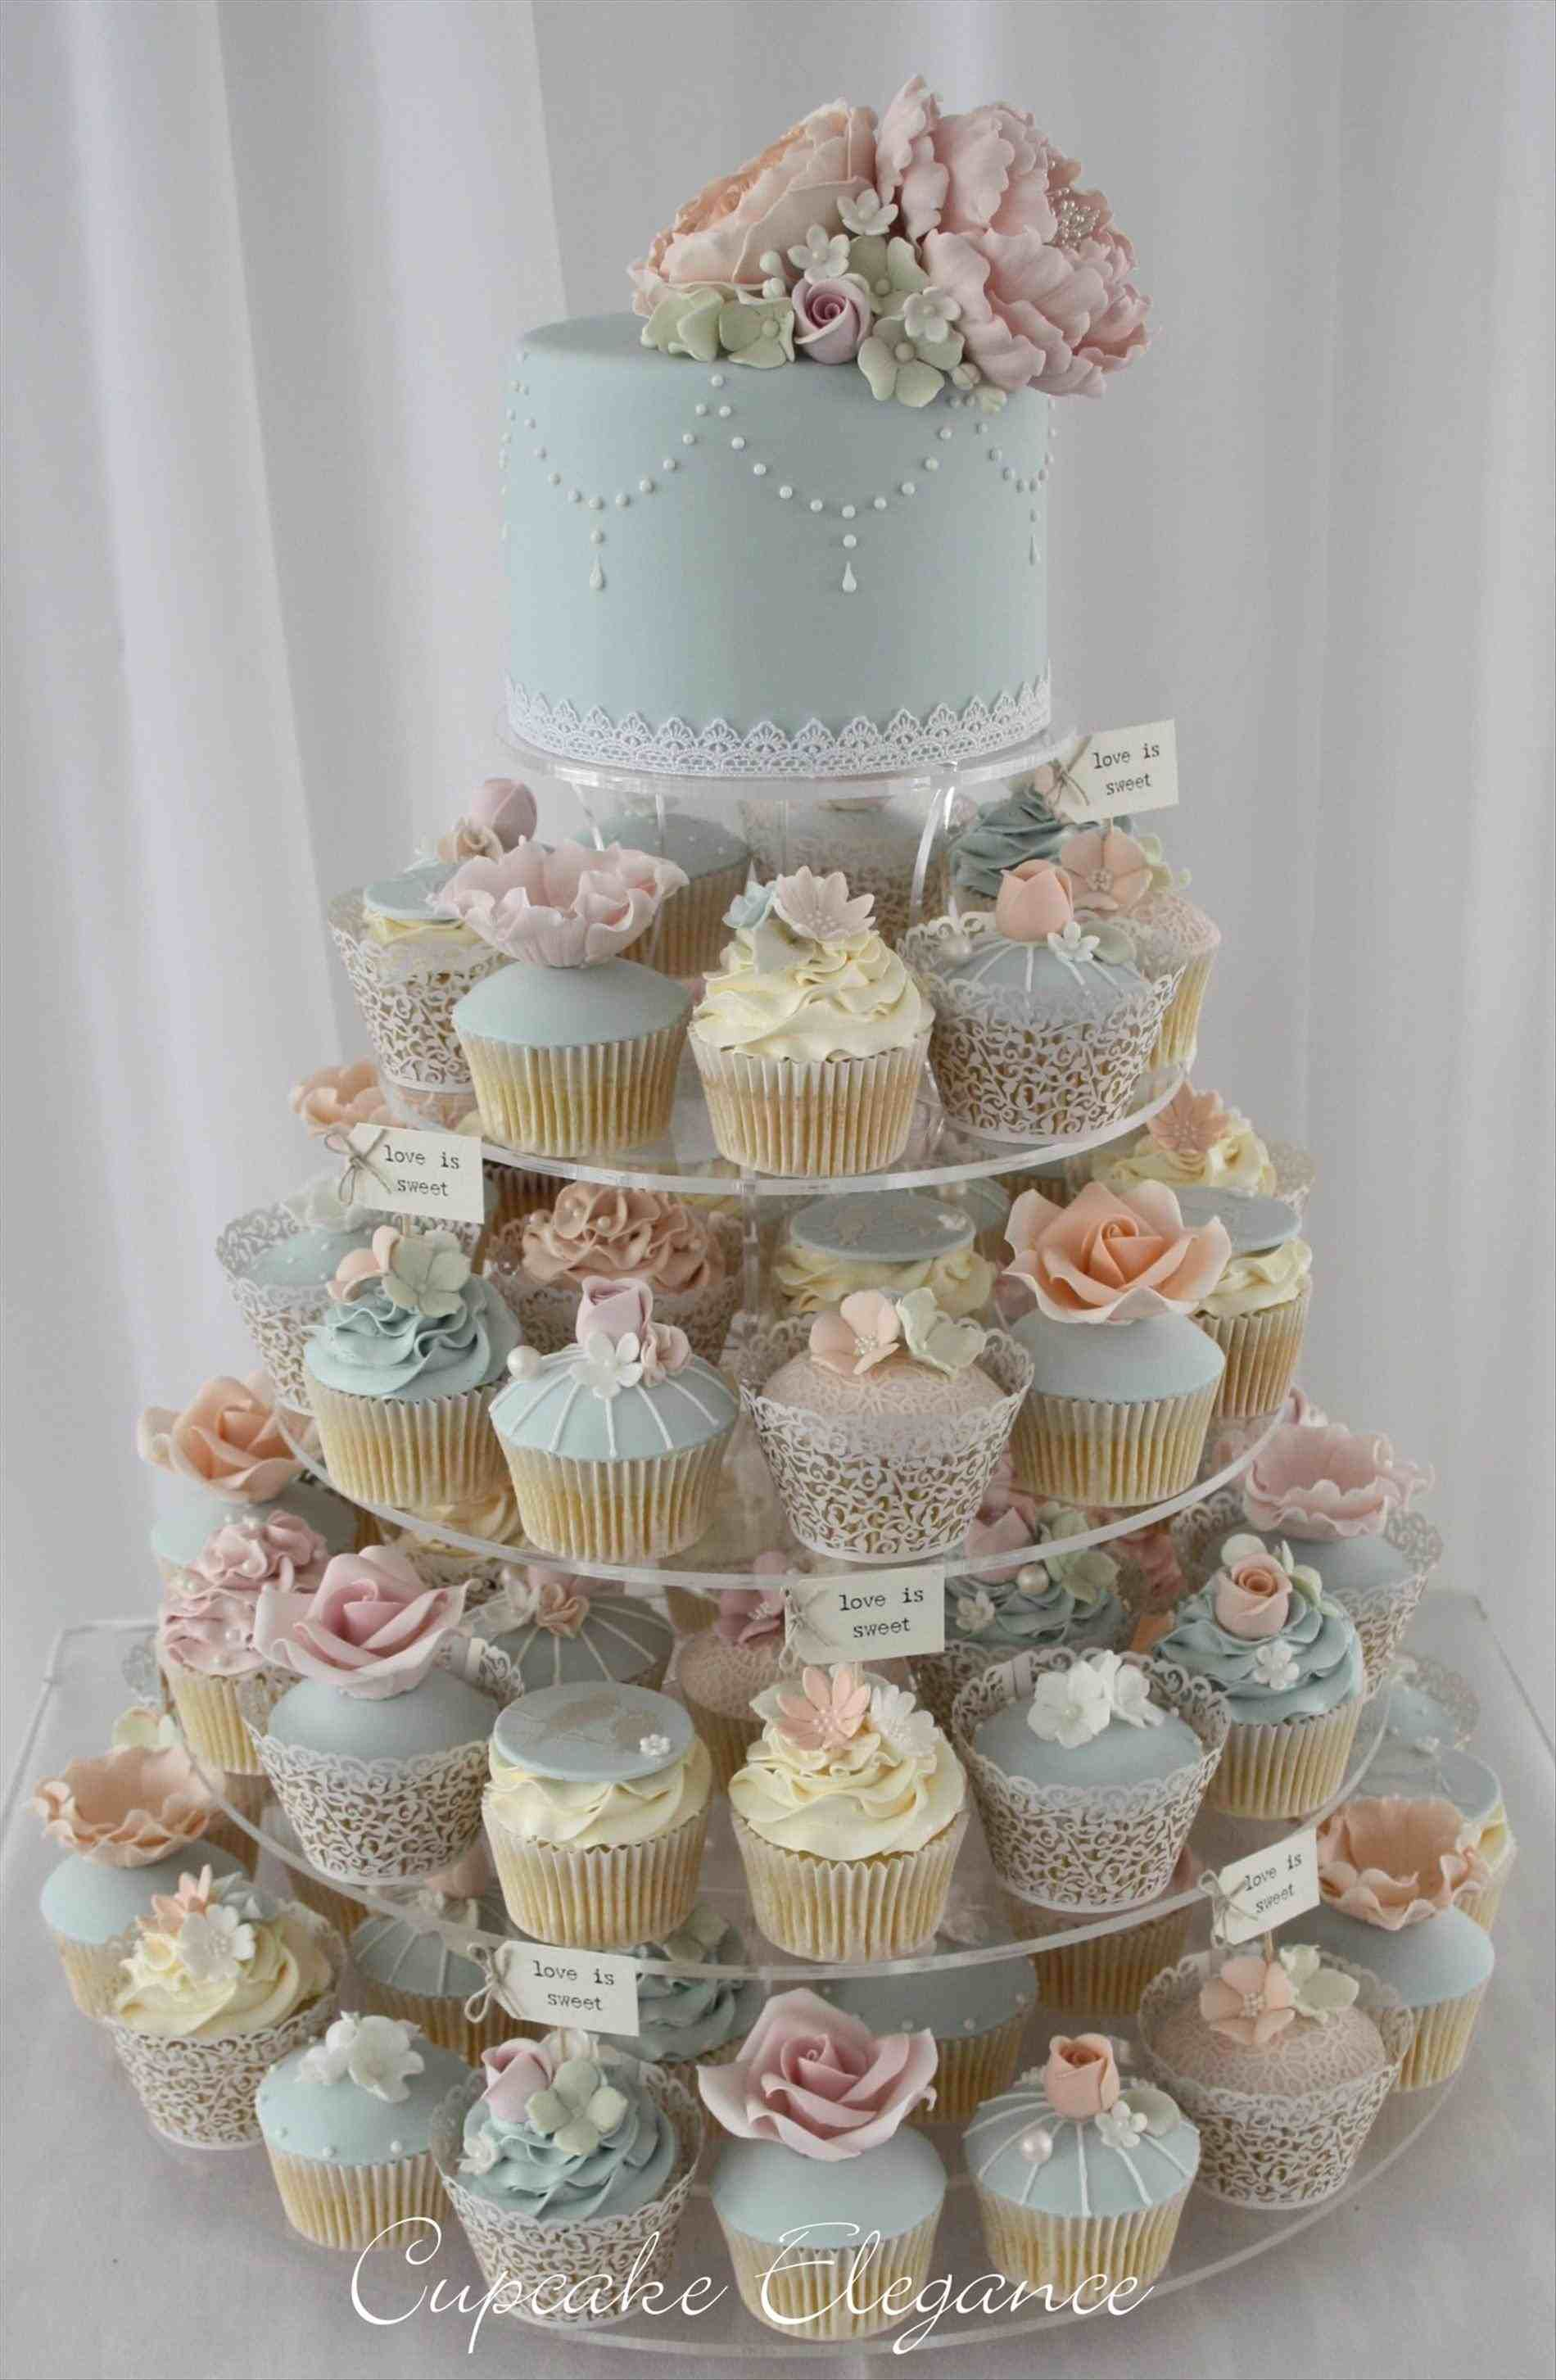 Suggested Sites Hint Wedbridal Site Clean Commerce Immediately This Instant Used Online Online Store Very Cheap Quality Online Sales Vintage Wedding Cupcakes Wedding Cakes Vintage Blue Wedding Cupcakes